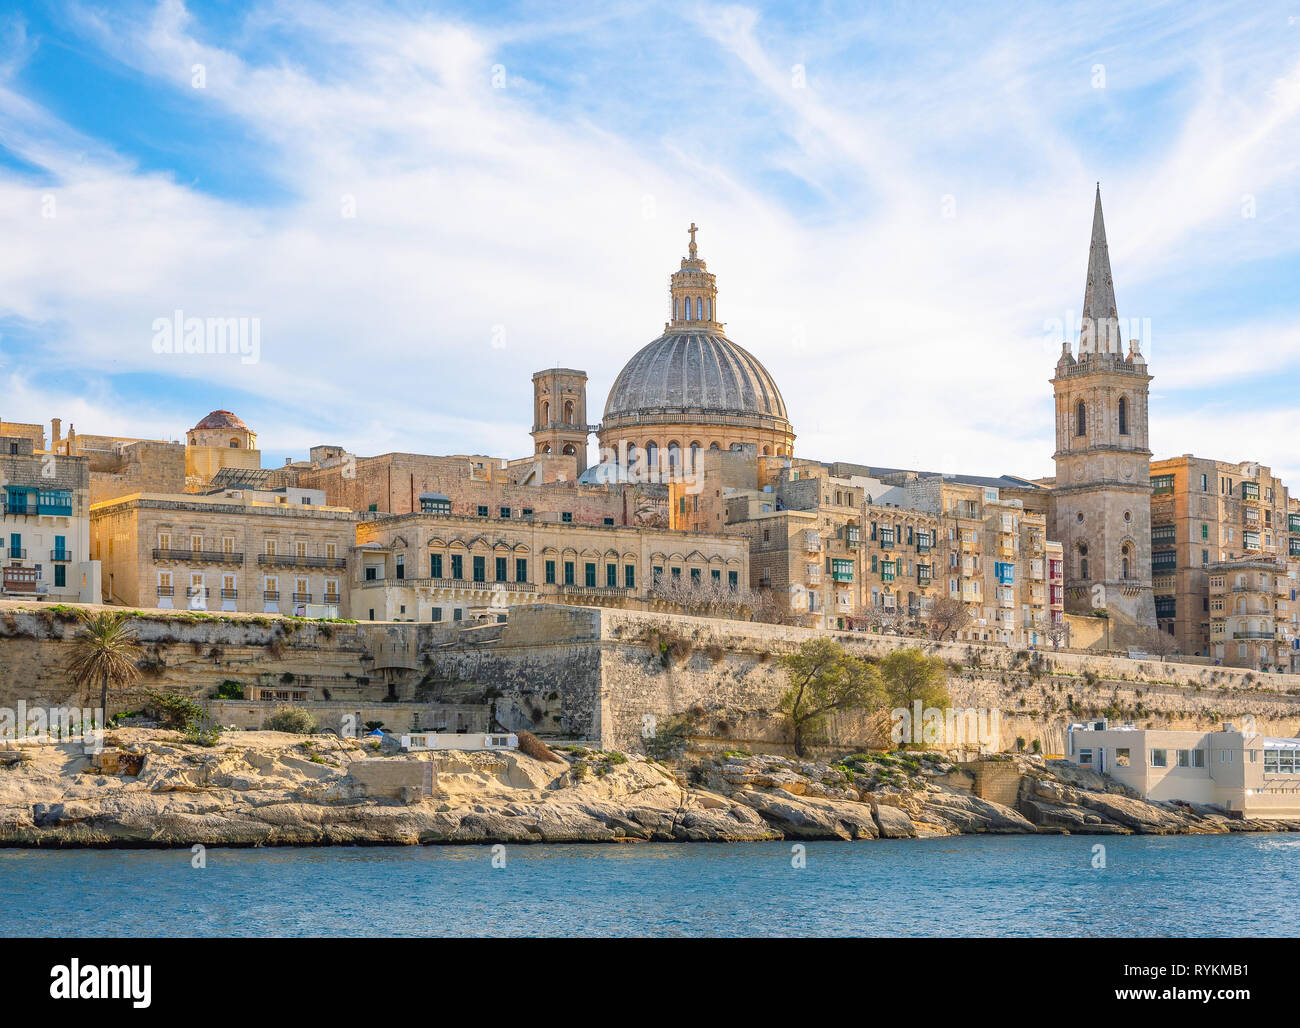 Malta, Valletta, the ancient architectures of the city seen from the sea - Stock Image